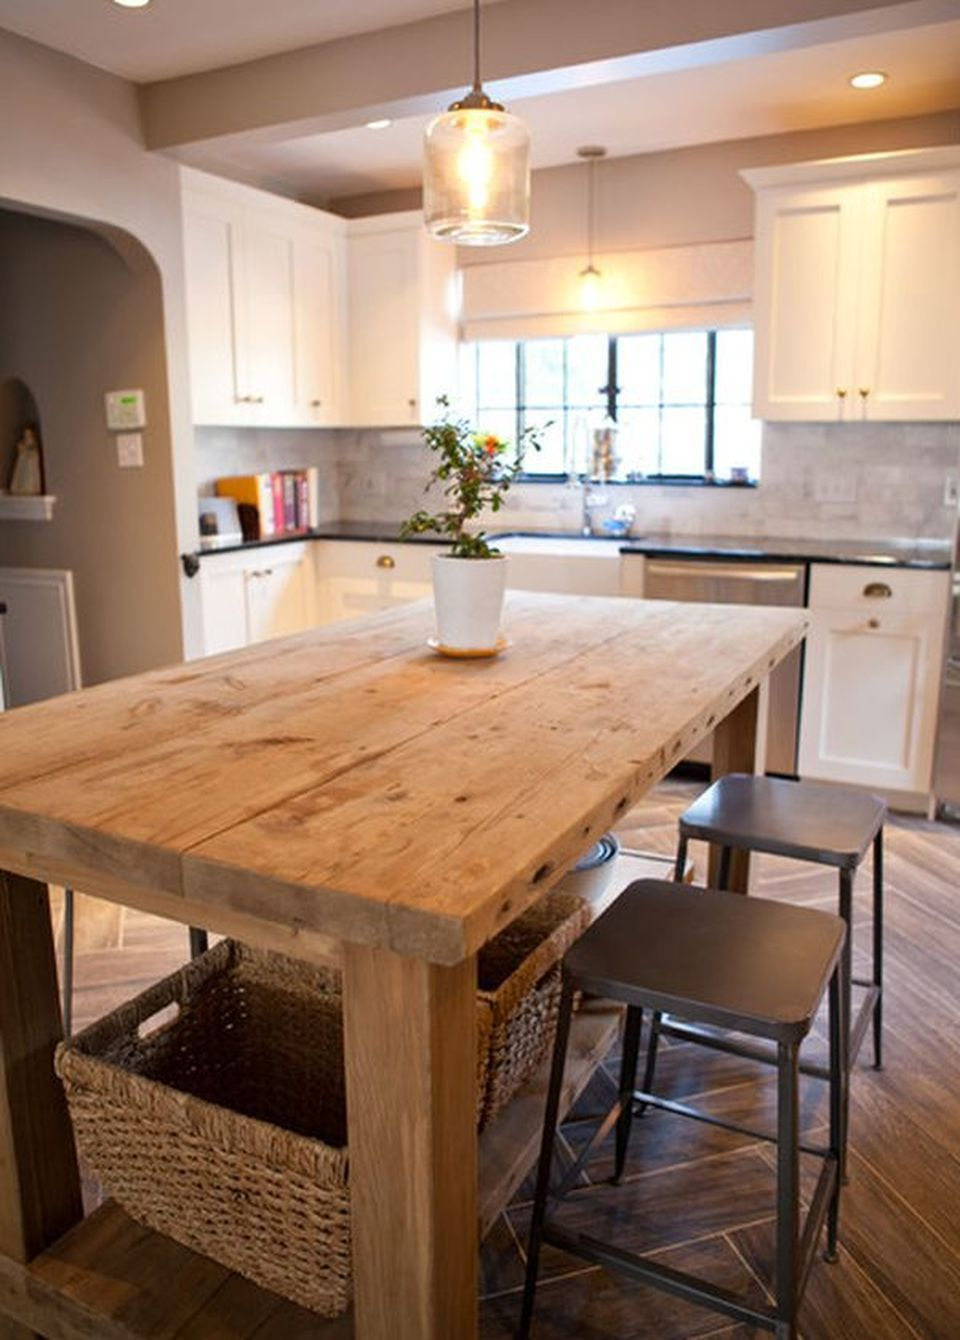 vintage farmhouse kitchen island inspirations 39 kitchen island with seating kitchen island on kitchen island id=71105